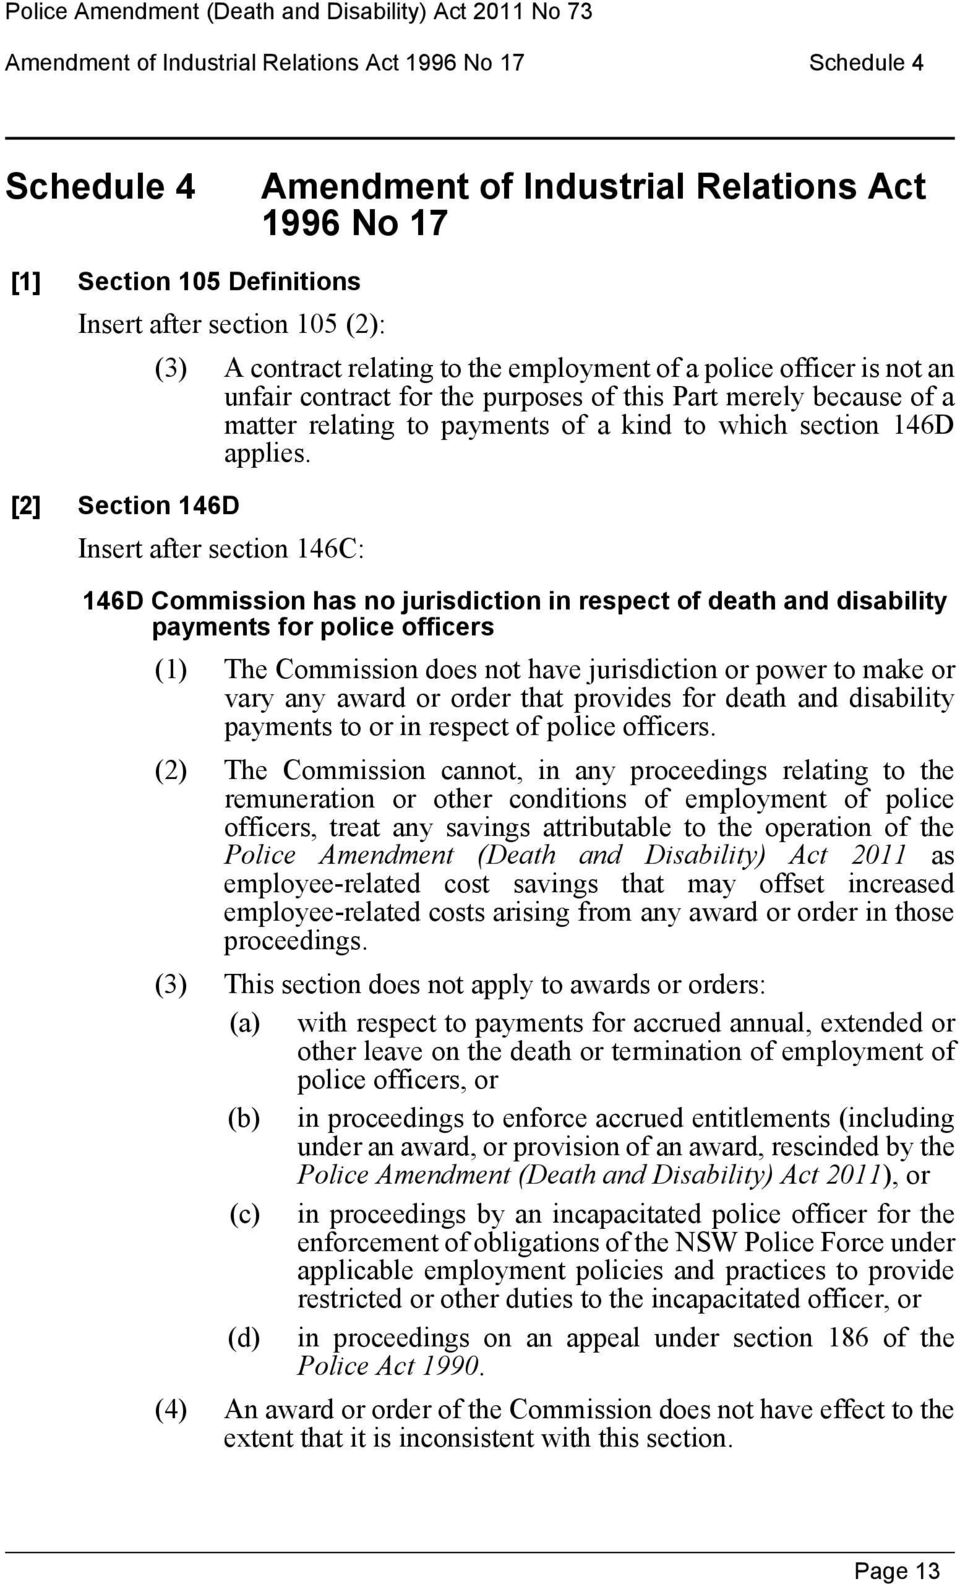 [2] Section 146D Insert after section 146C: 146D Commission has no jurisdiction in respect of death and disability payments for police officers (1) The Commission does not have jurisdiction or power